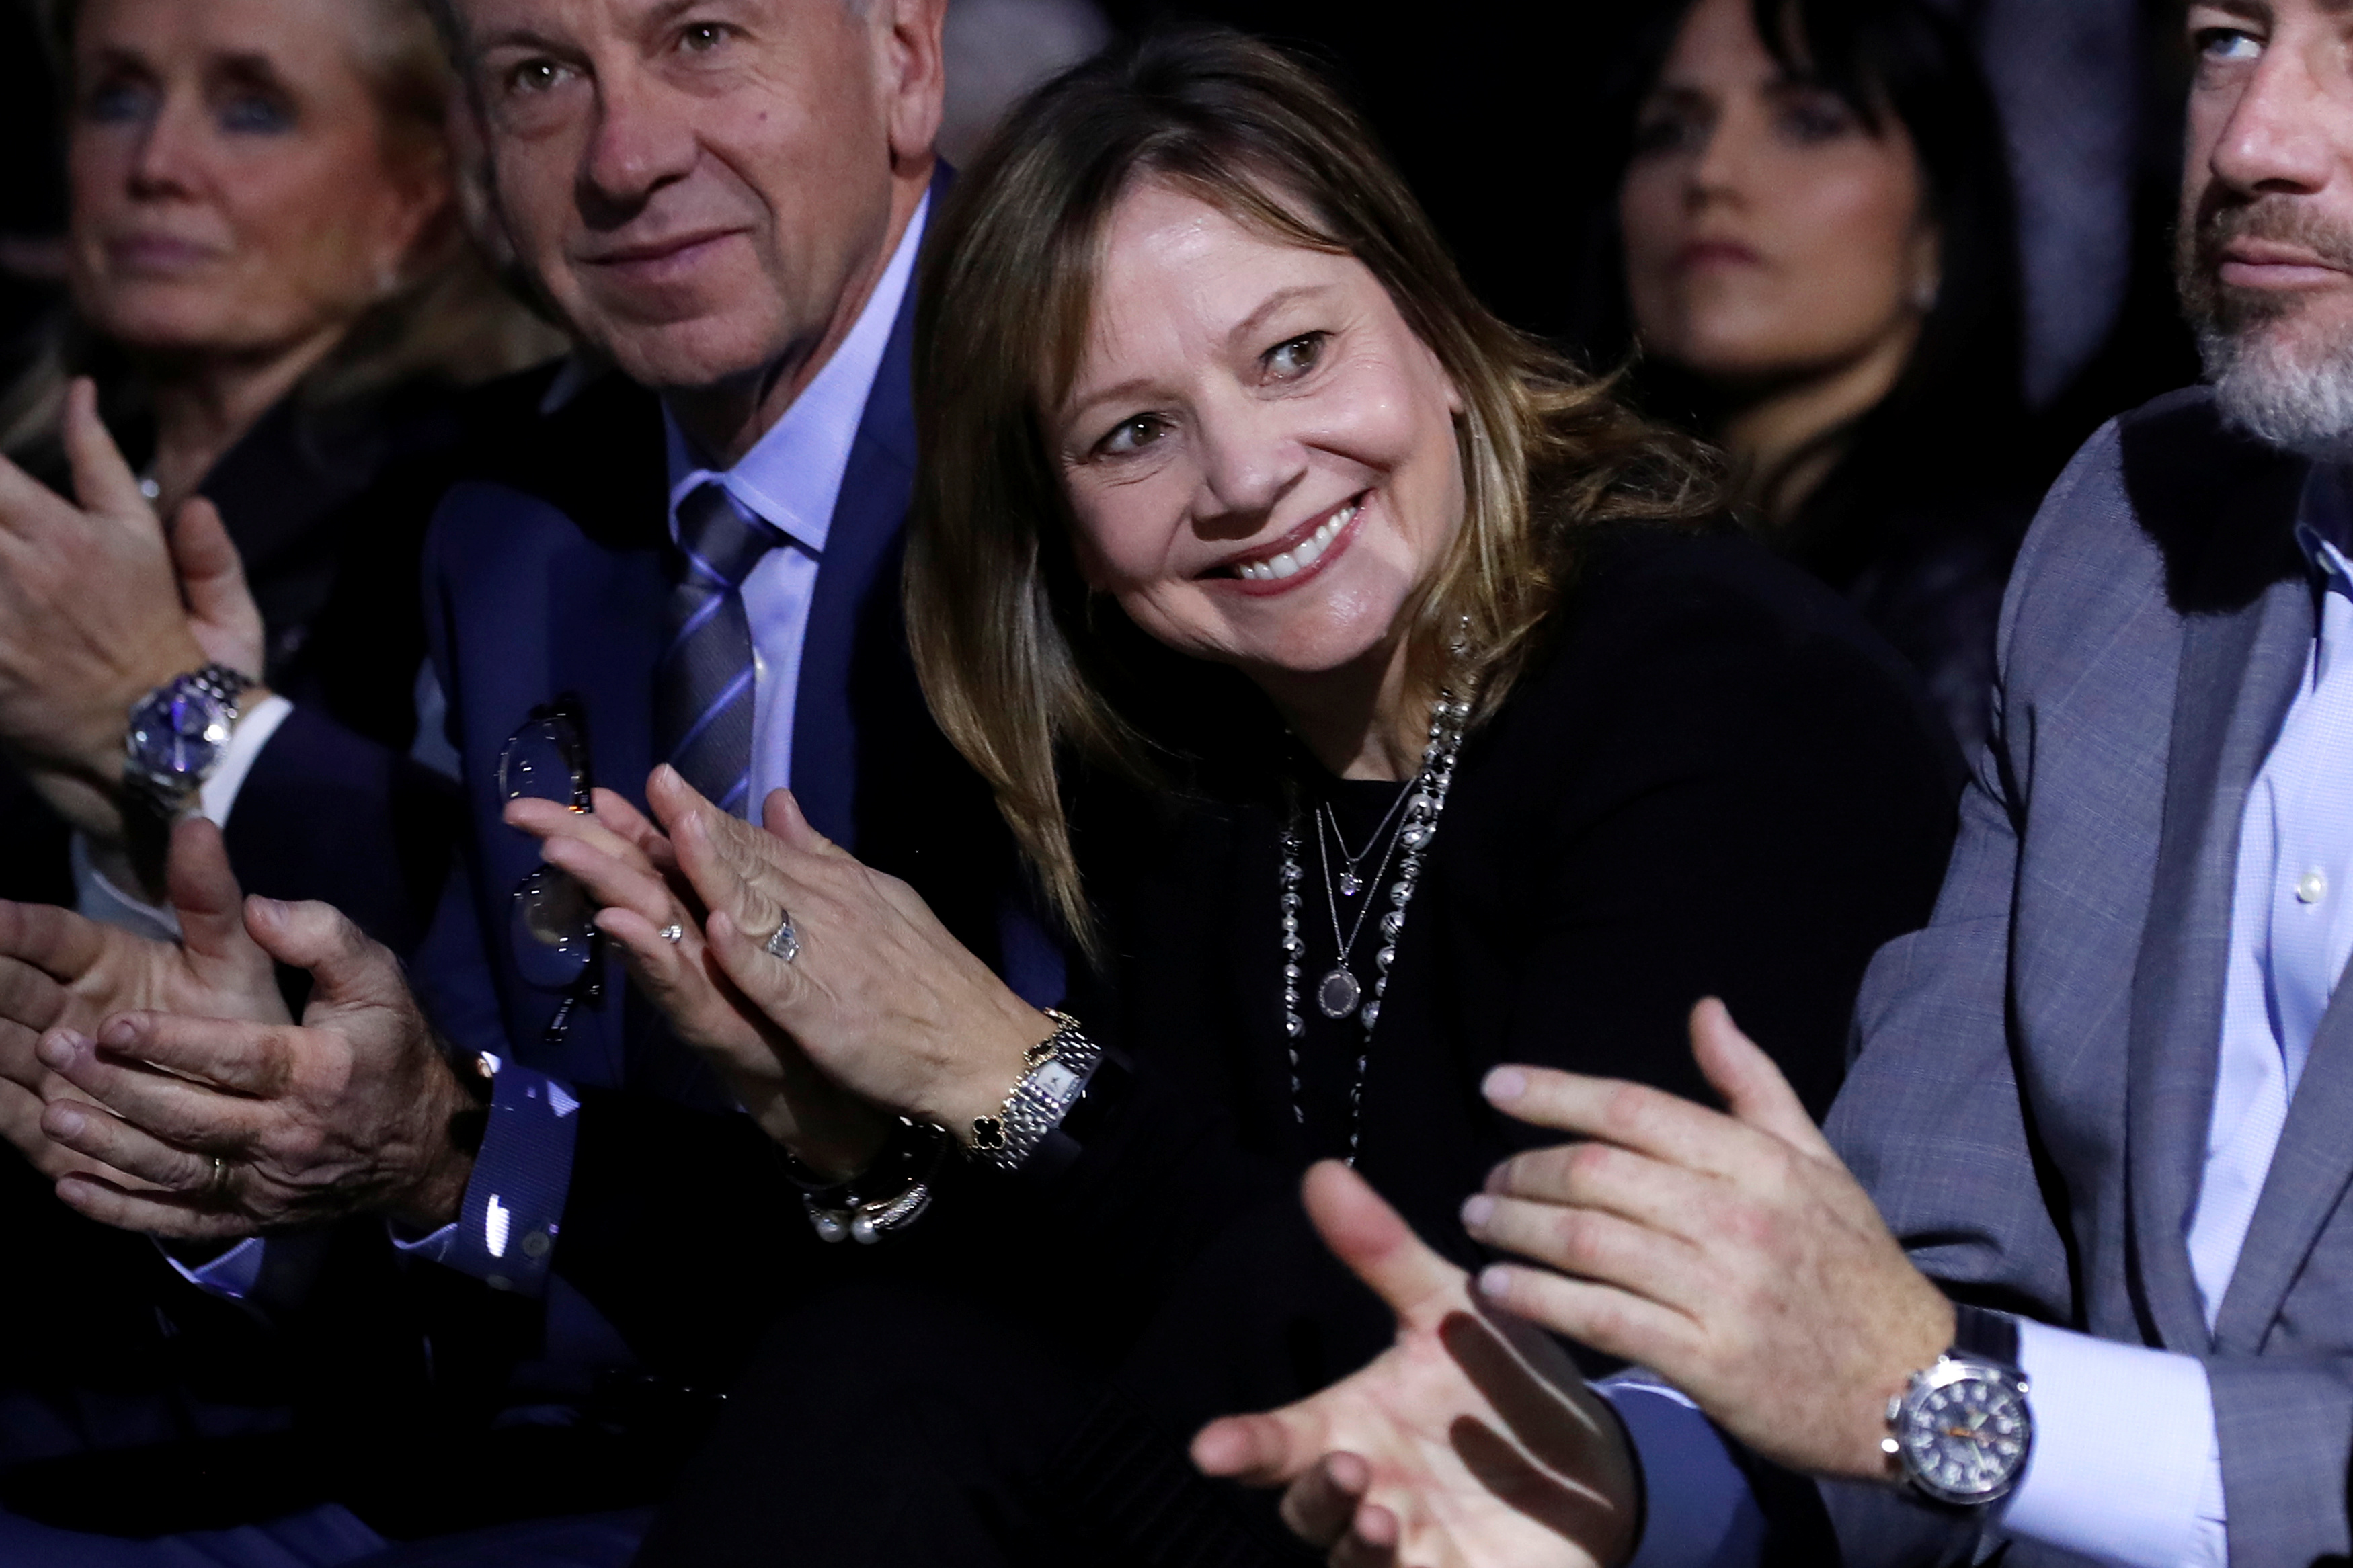 General Motors CEO Mary Barra applauds some of her company managers as they are introduced at a Chevrolet truck unveiling at the North American International Auto Show in Detroit, Michigan, Jan. 13, 2018.